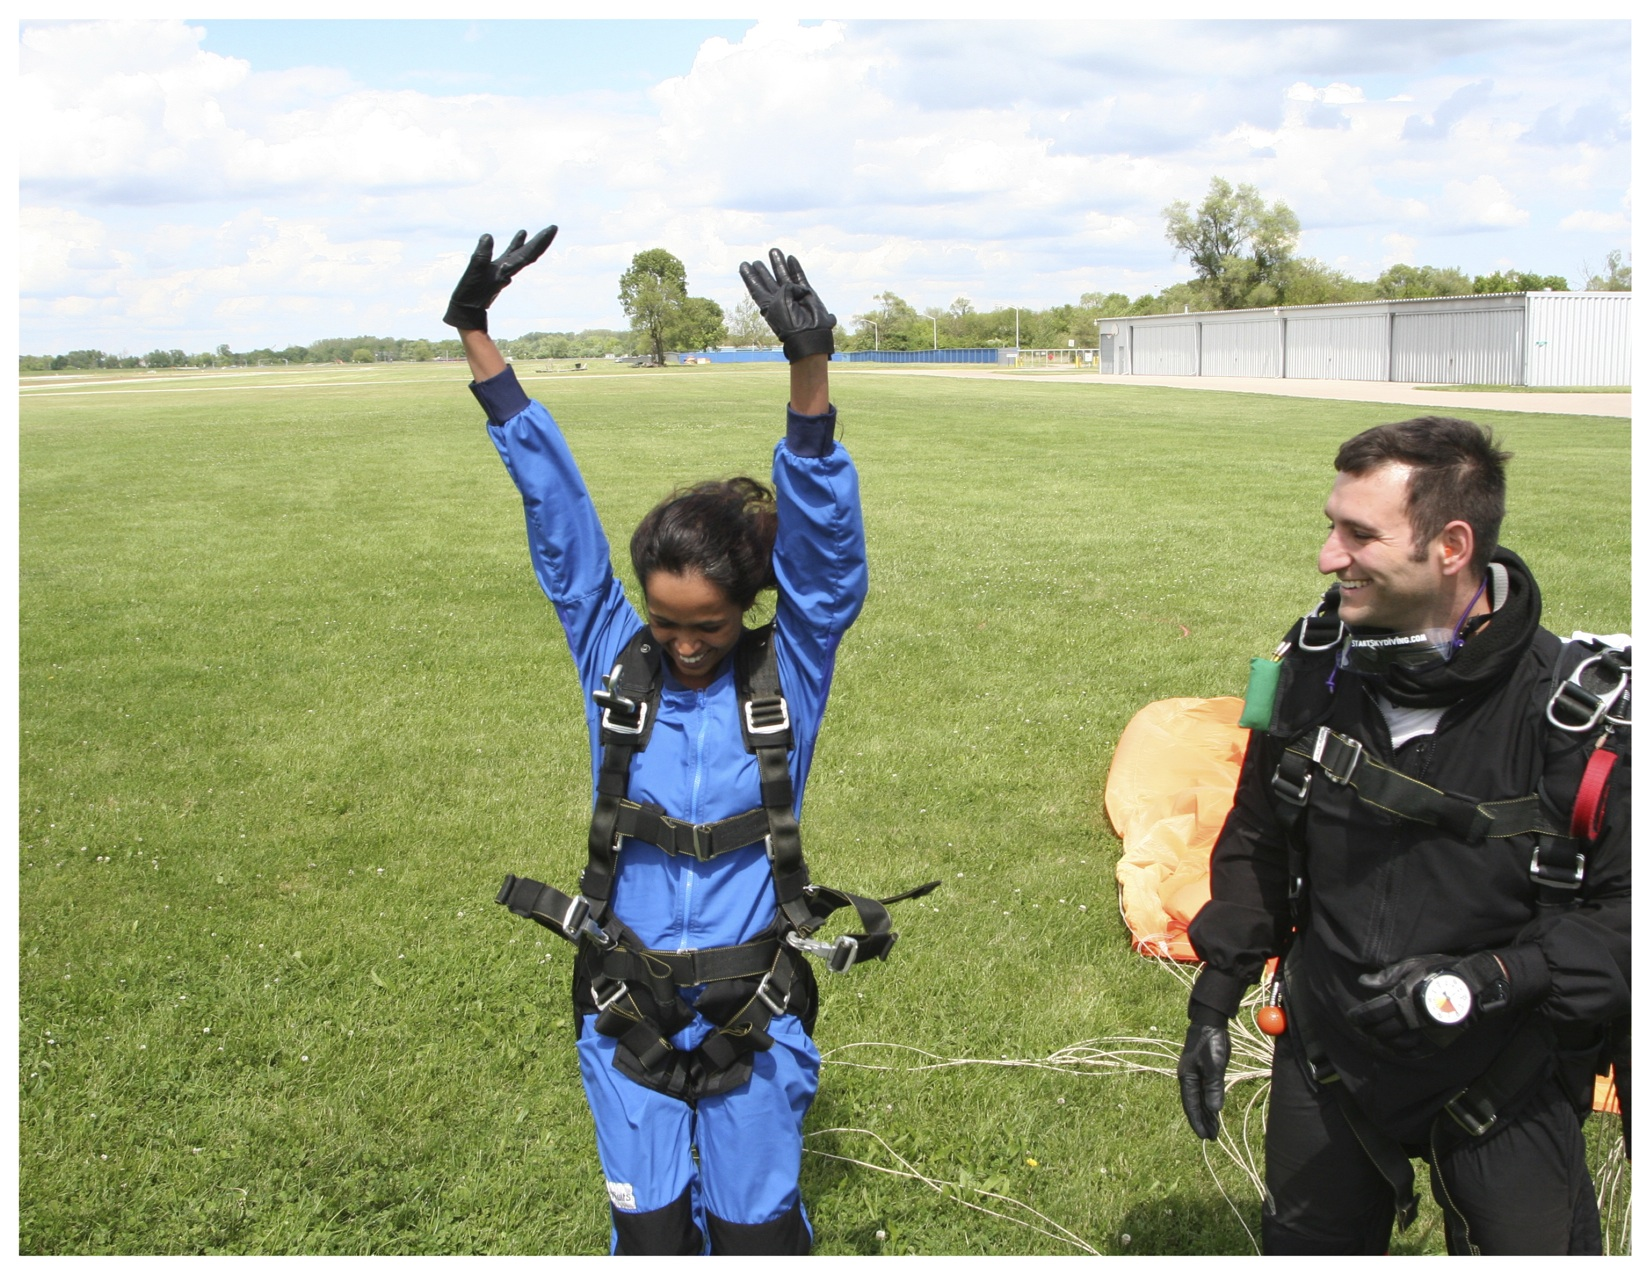 sky diving experience Tandem skydiving tandem skydiving is the fastest and easiest way to experience the excitement of freefalling you will be attached to the front of an experienced tandem jump master and enjoy the definitive adrenaline rush - all without the intensive training or responsibility of opening your own parachute.